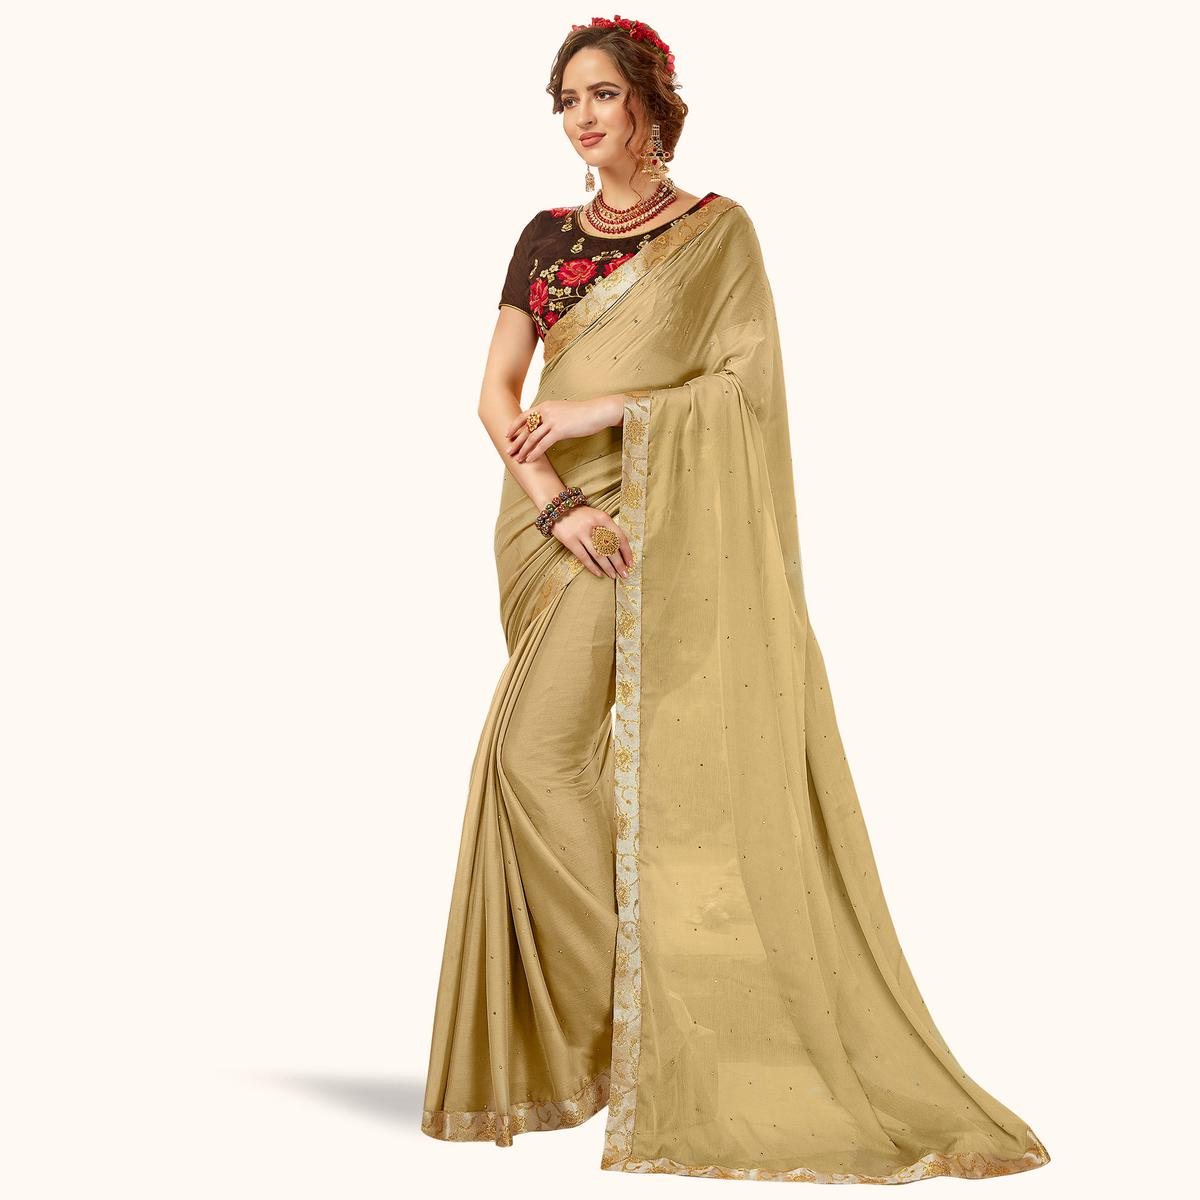 Stunning Chiku Colored Partywear Georgette Saree